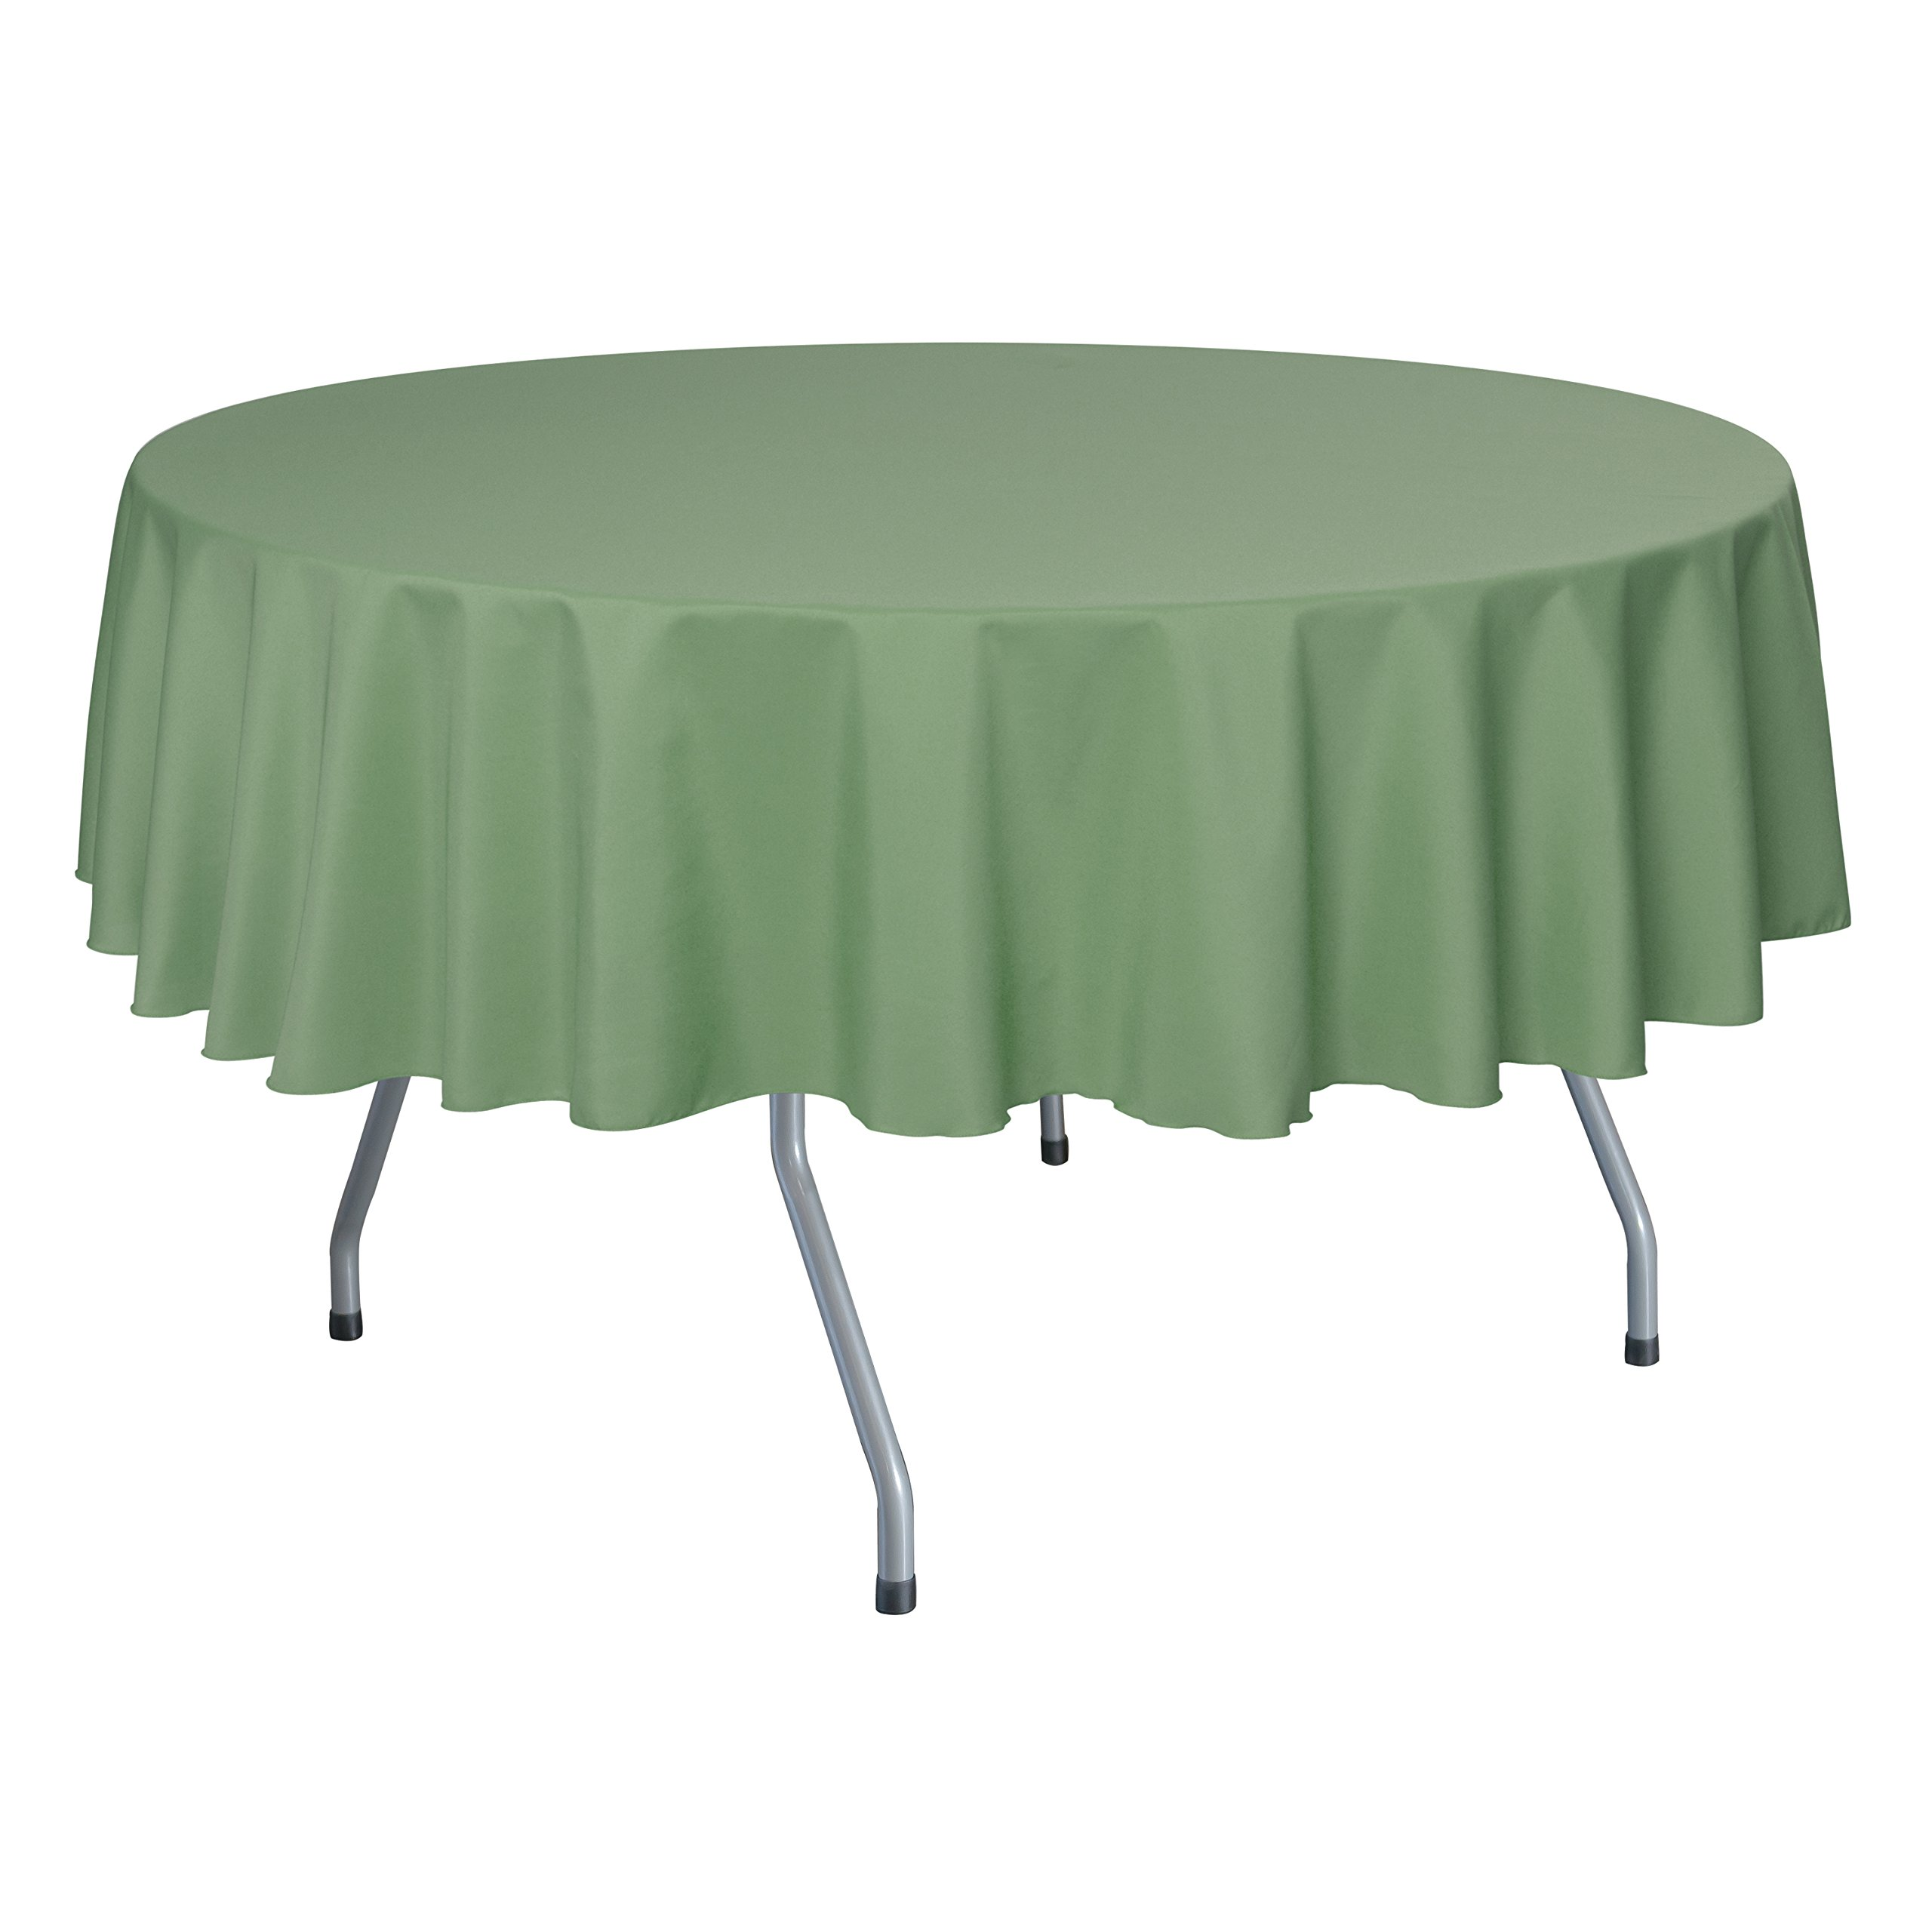 Ultimate Textile (10 Pack) 72-Inch Round Polyester Linen Tablecloth - for Wedding, Restaurant or Banquet use, Sage Green